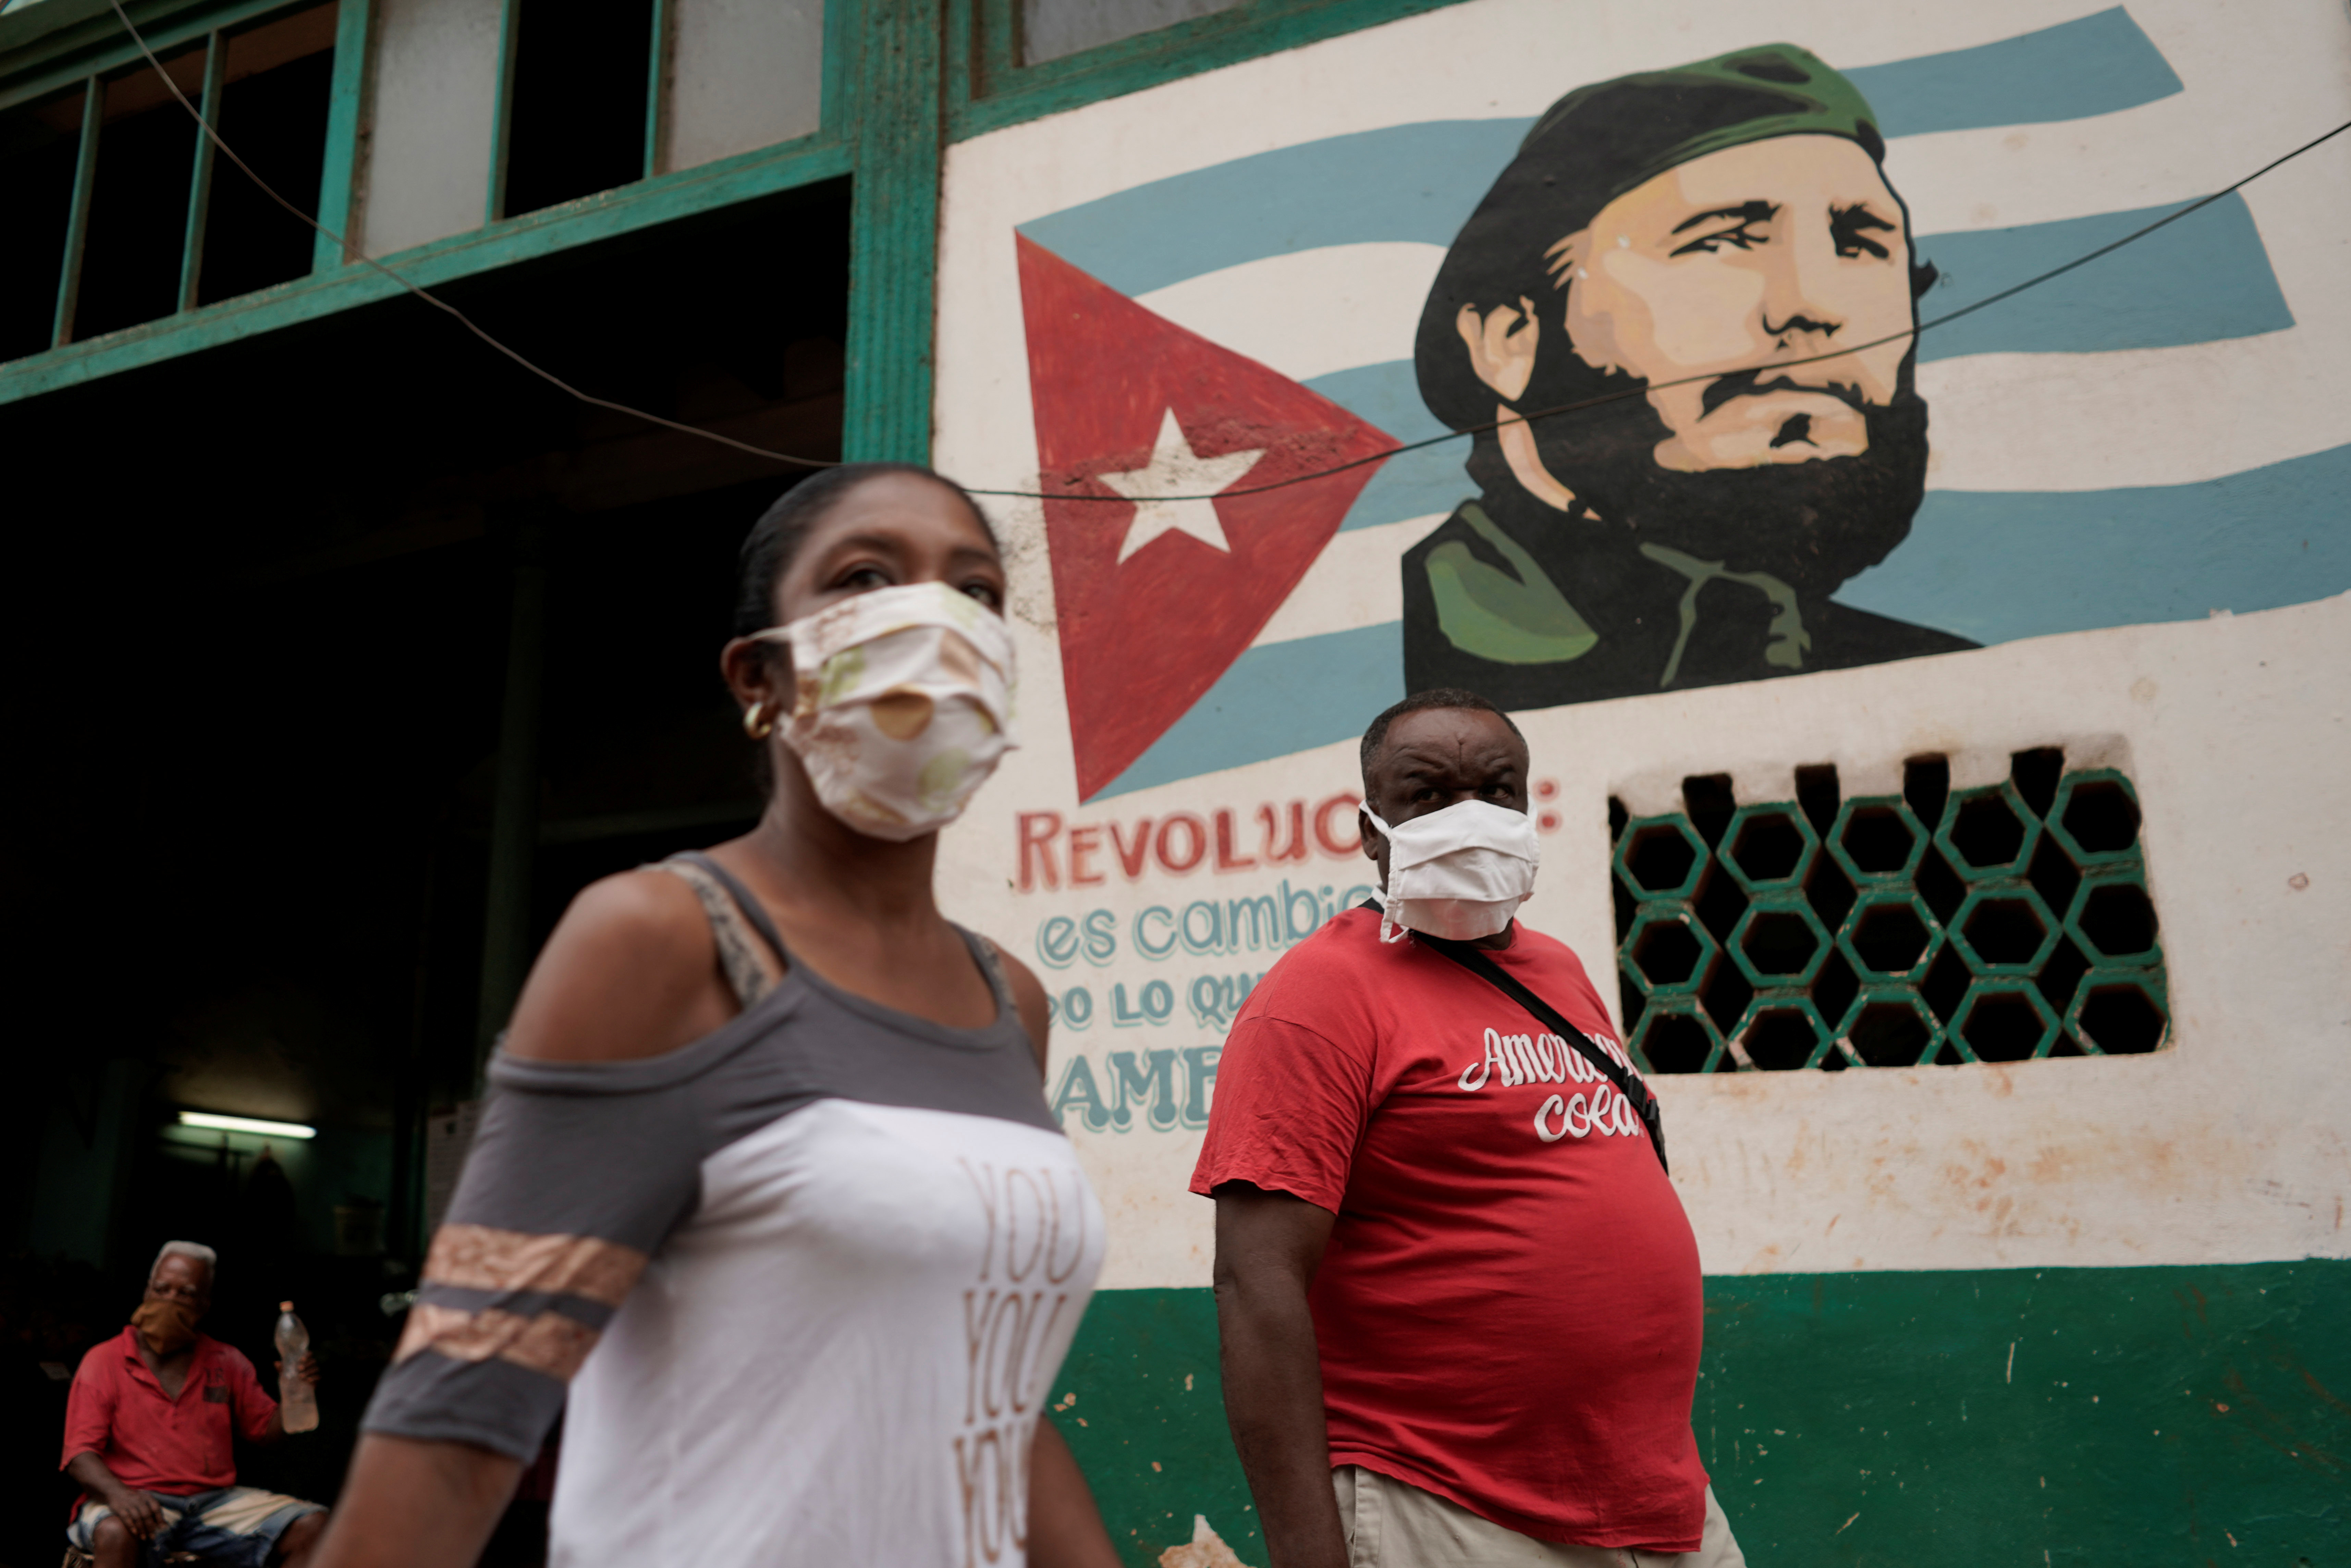 People pass by an image of late Cuban President Fidel Castro amid concerns about the spread of the coronavirus disease (COVID-19), in Havana, Cuba, July 19, 2020. REUTERS/Alexandre Meneghini - RC2HWH9FDQ70